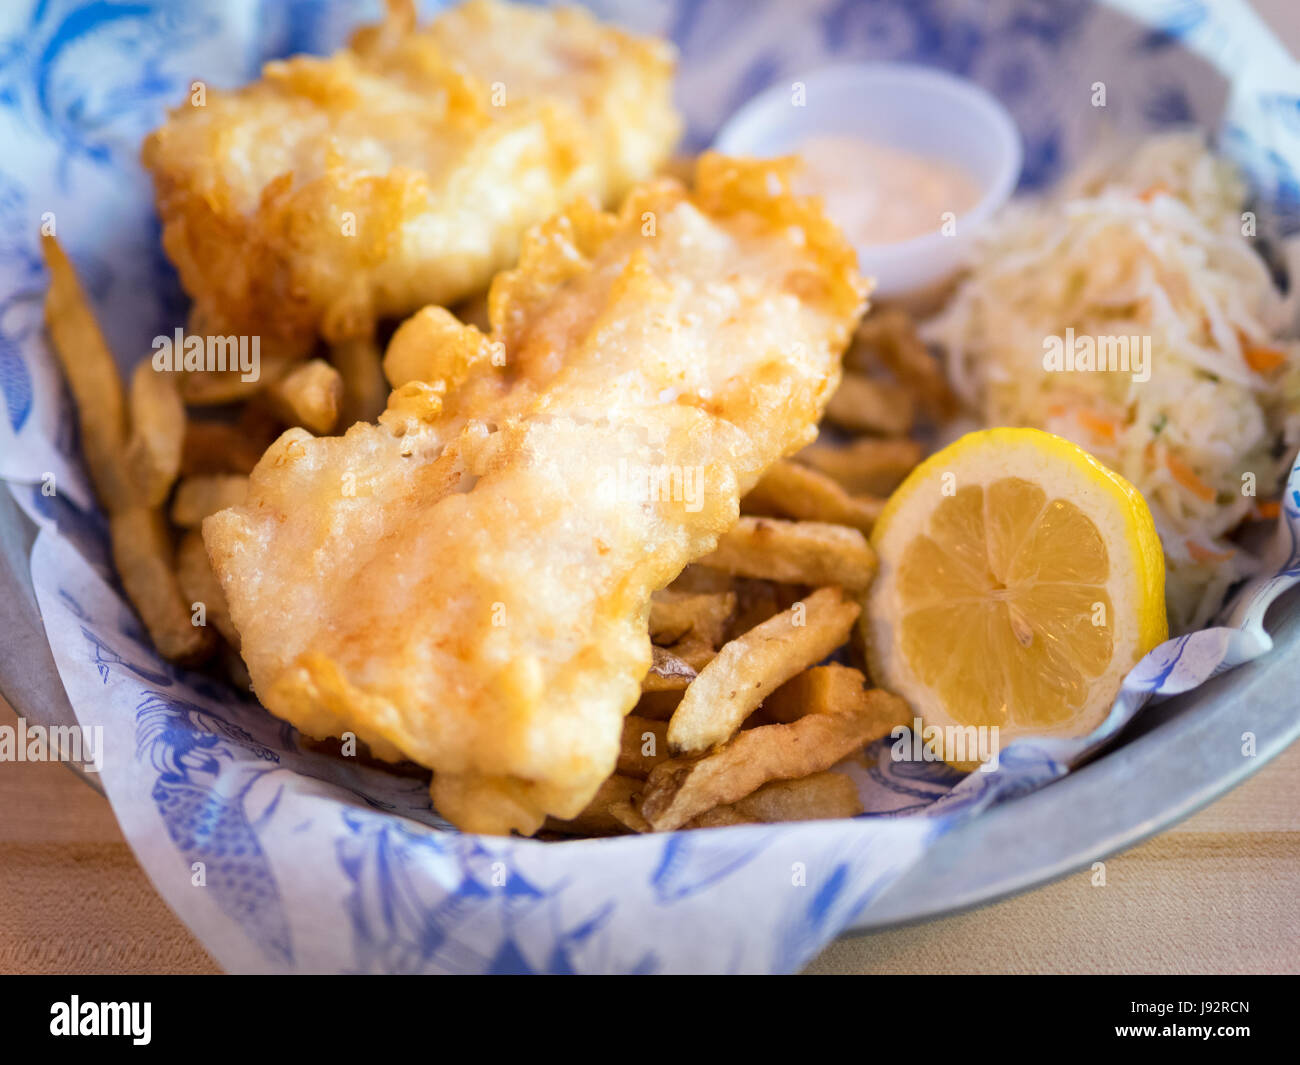 Fish and chips (haddock and chips) from Grandin Fish 'N' Chips, a popular fish and chips shop in Edmonton, - Stock Image